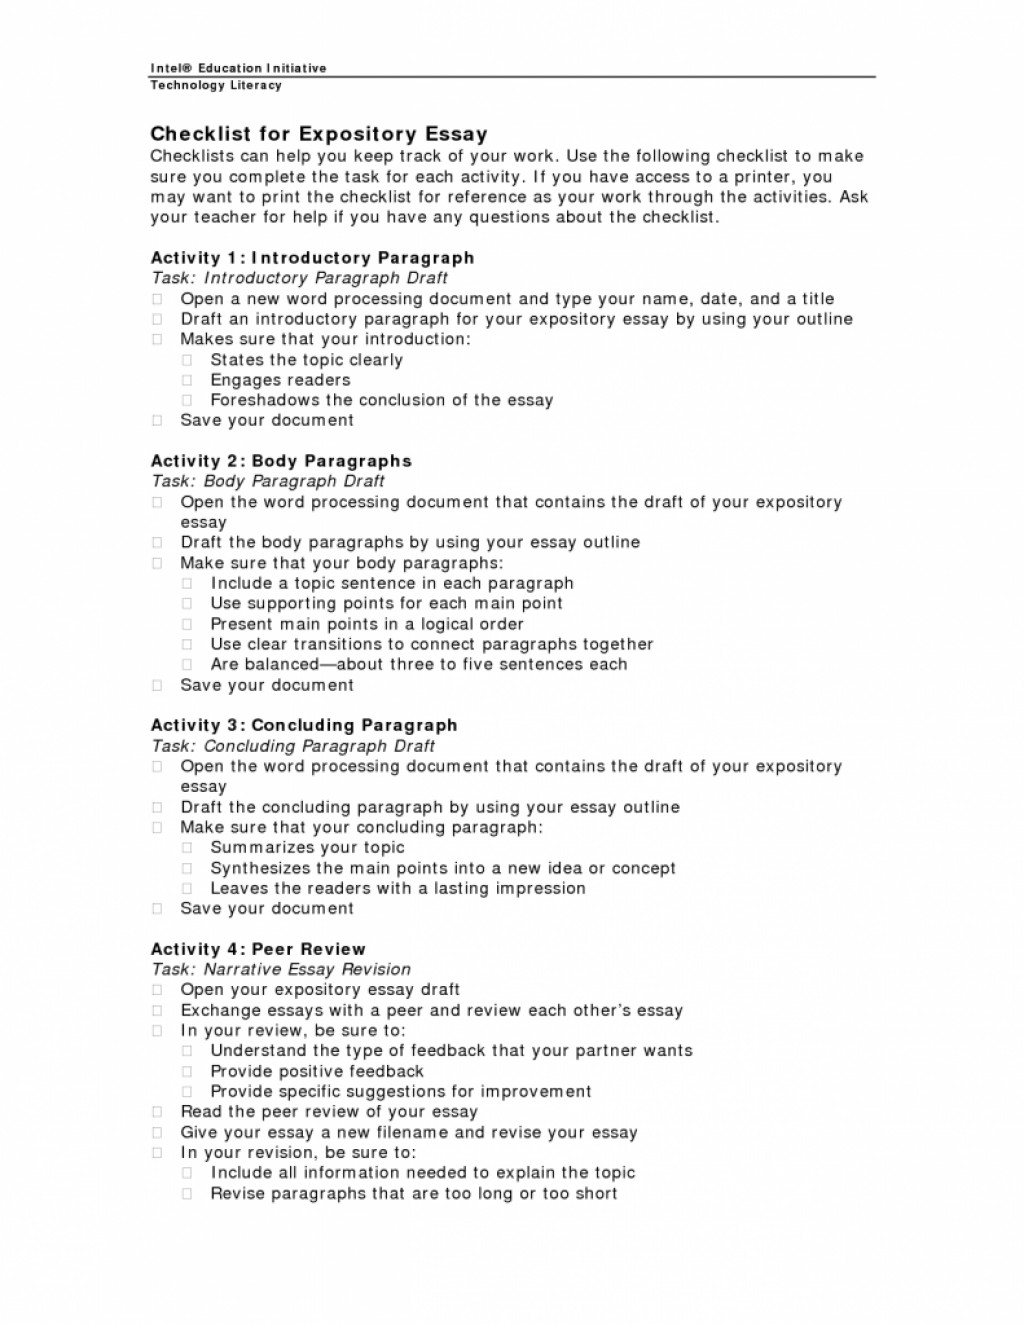 023 Expository Essay Checklist 791x1024 What Is An Magnificent Gcu Examples 4th Grade Large